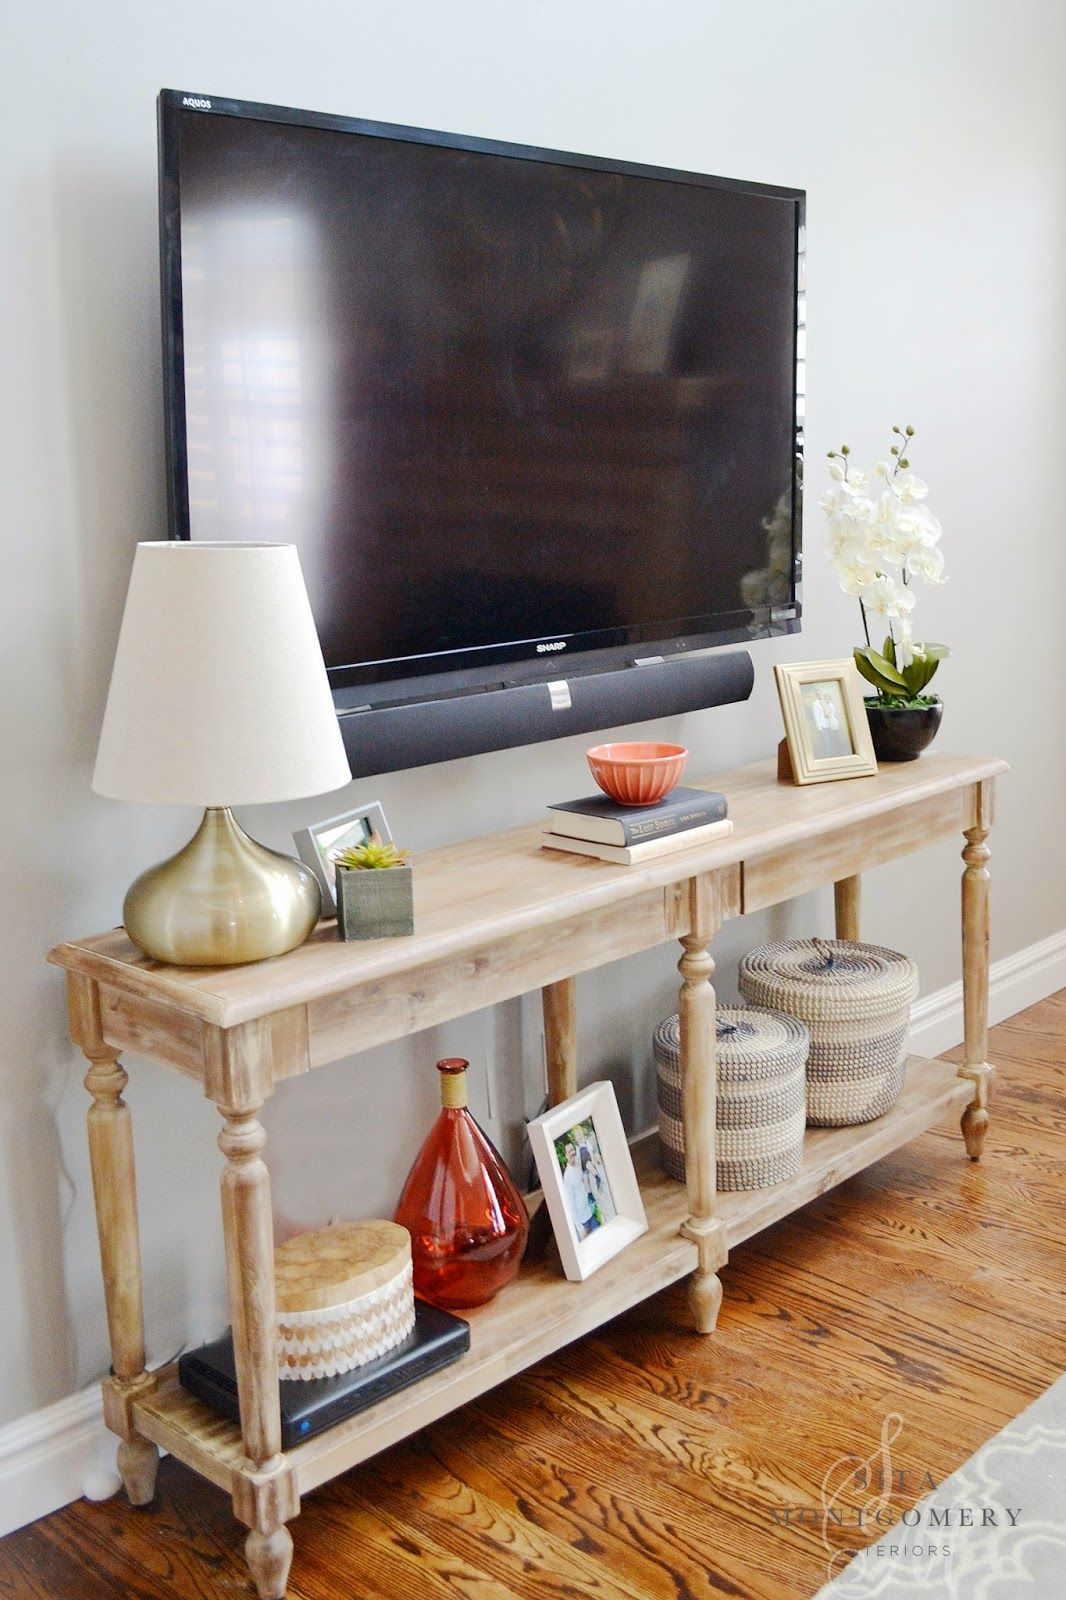 I LIKE THE USE OF THIS CONSOLE TABLE AS THE TV STAND My Favorites For Home